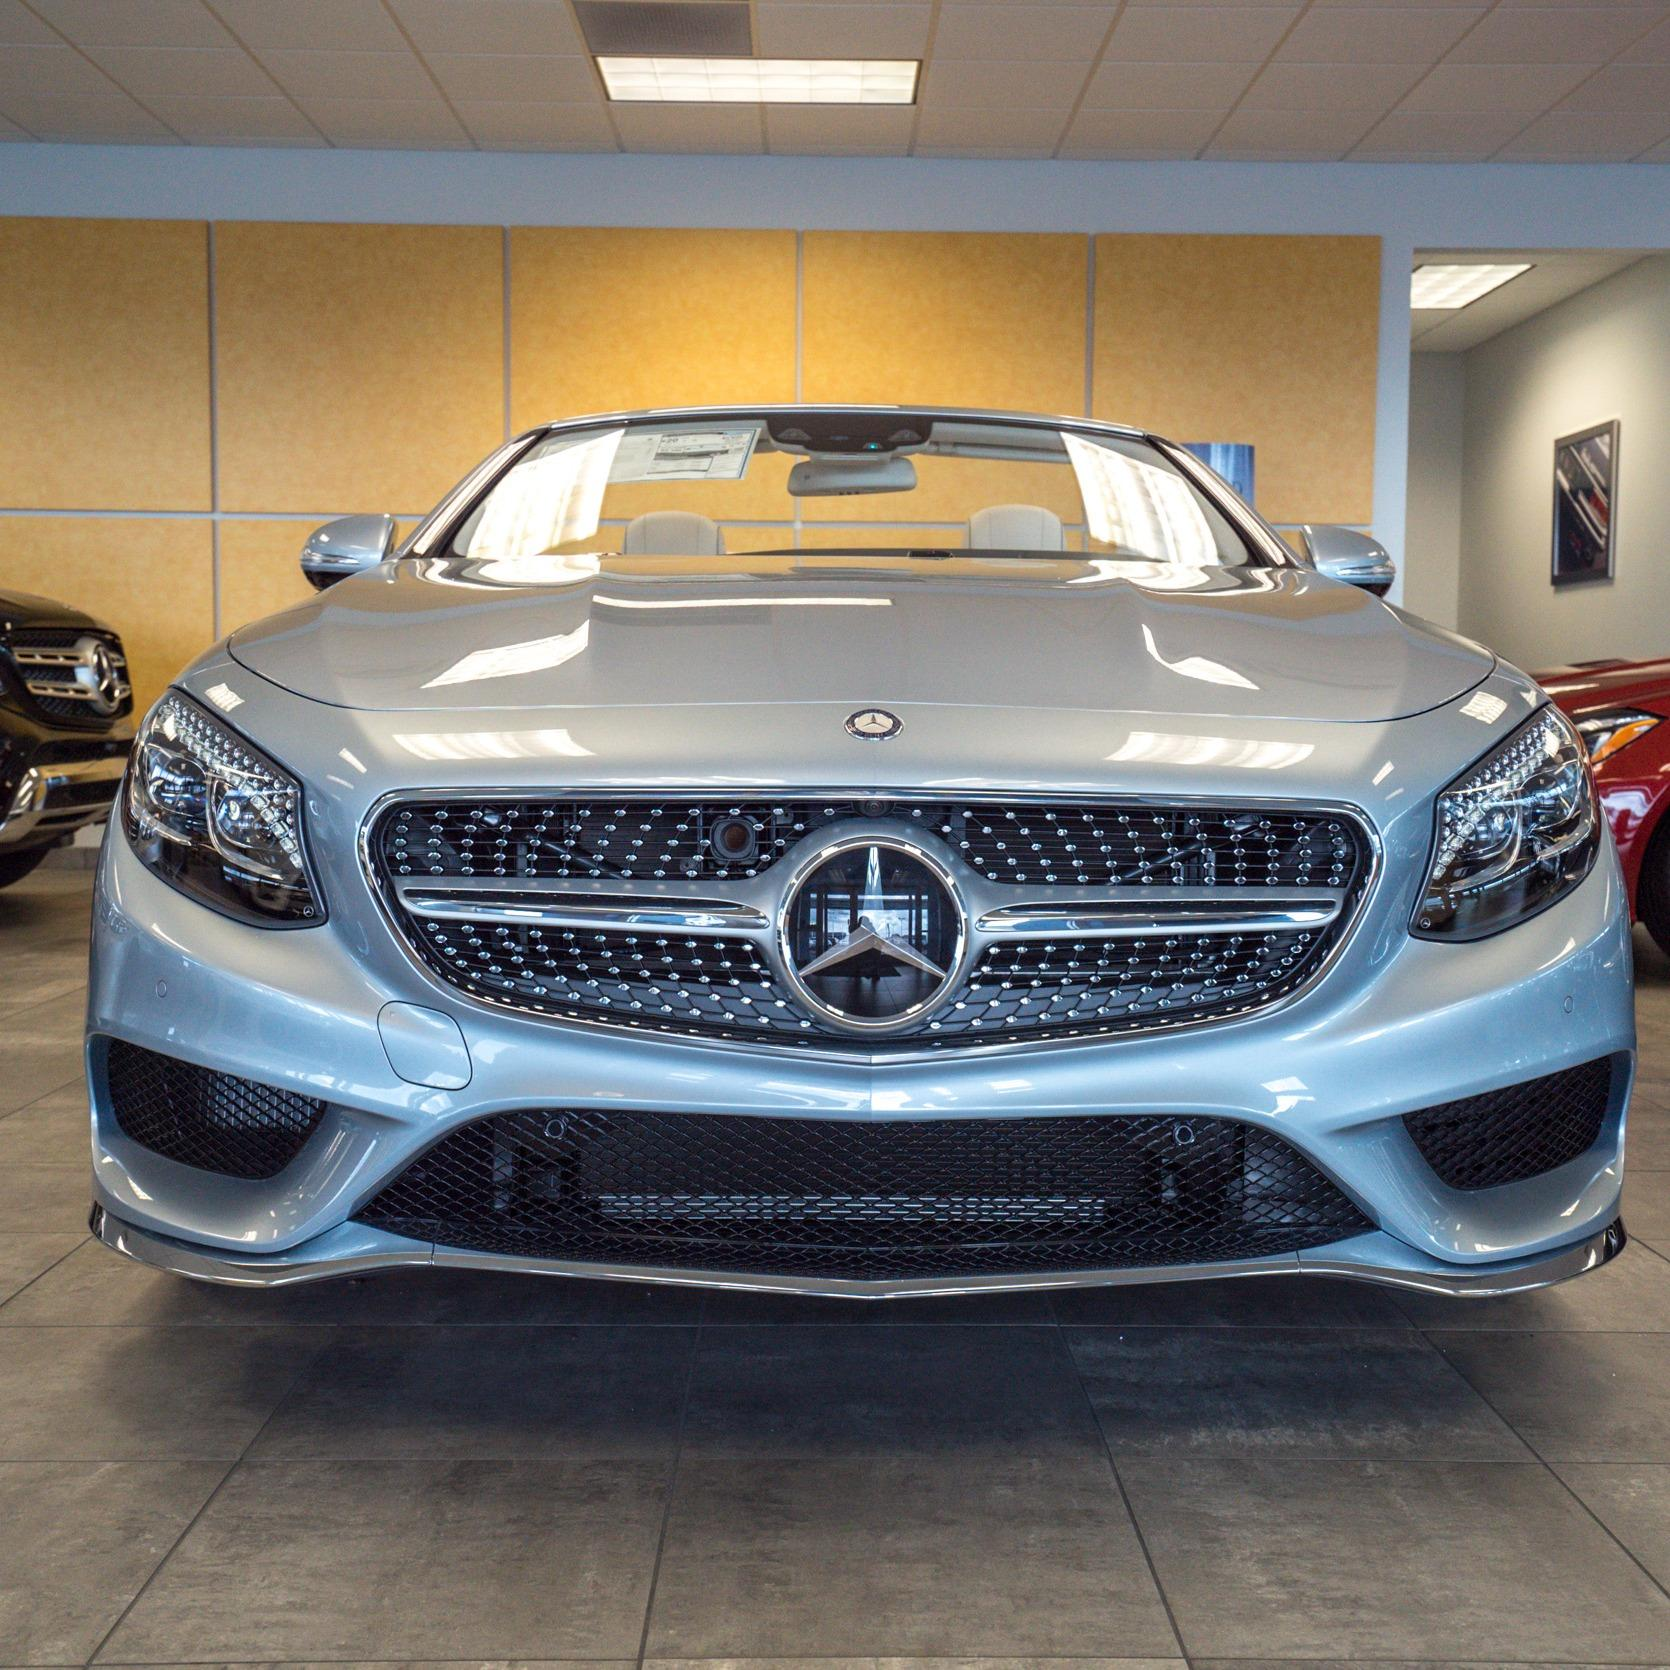 Mercedes benz of waco in waco tx auto dealers yellow for Mercedes benz dealers in texas